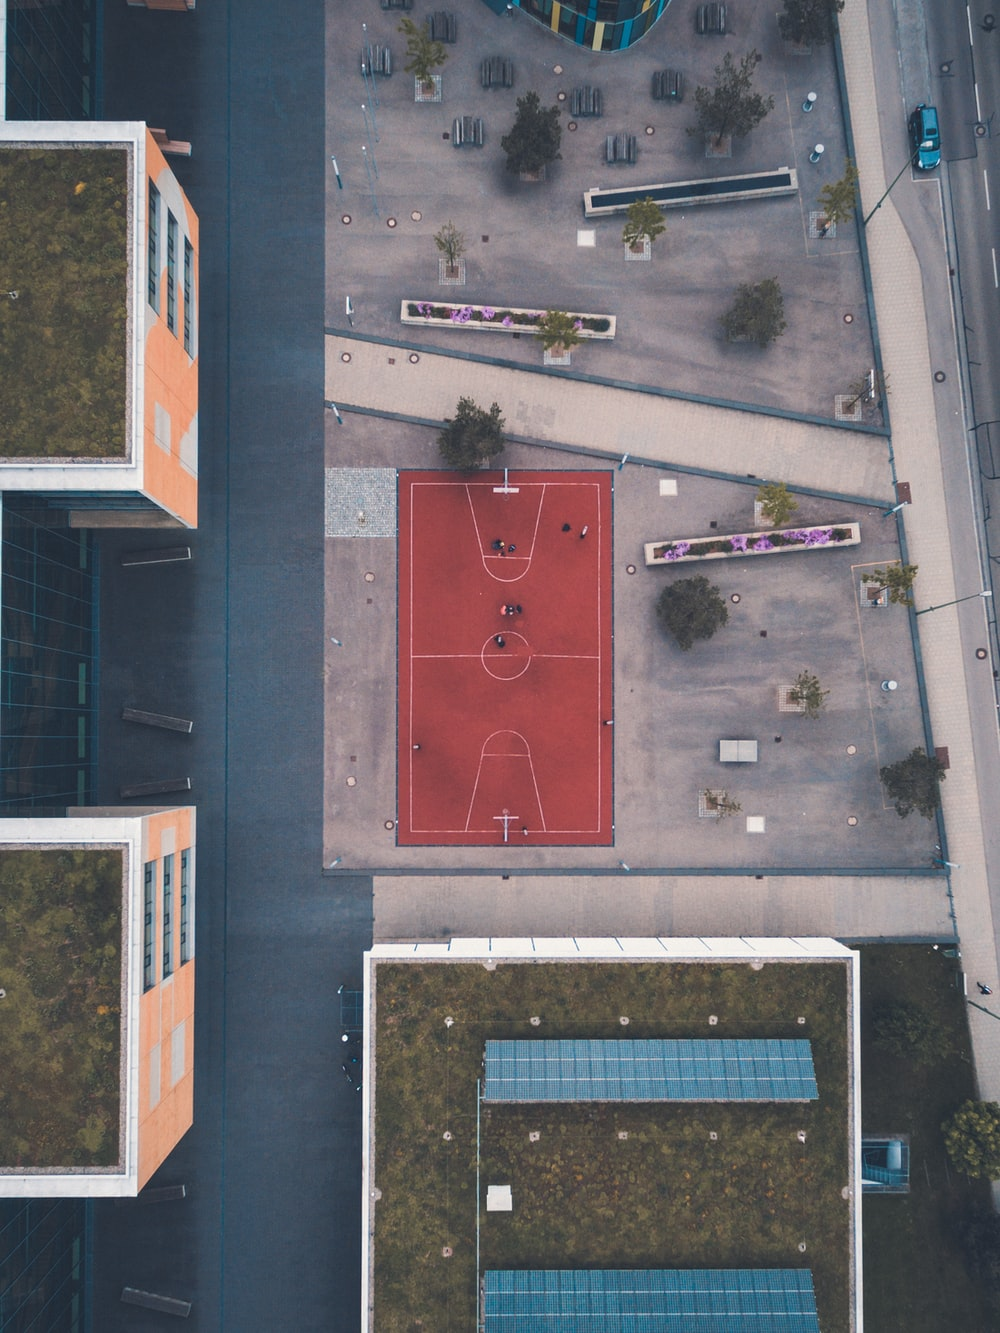 red basketball court near buildings in aerial photography